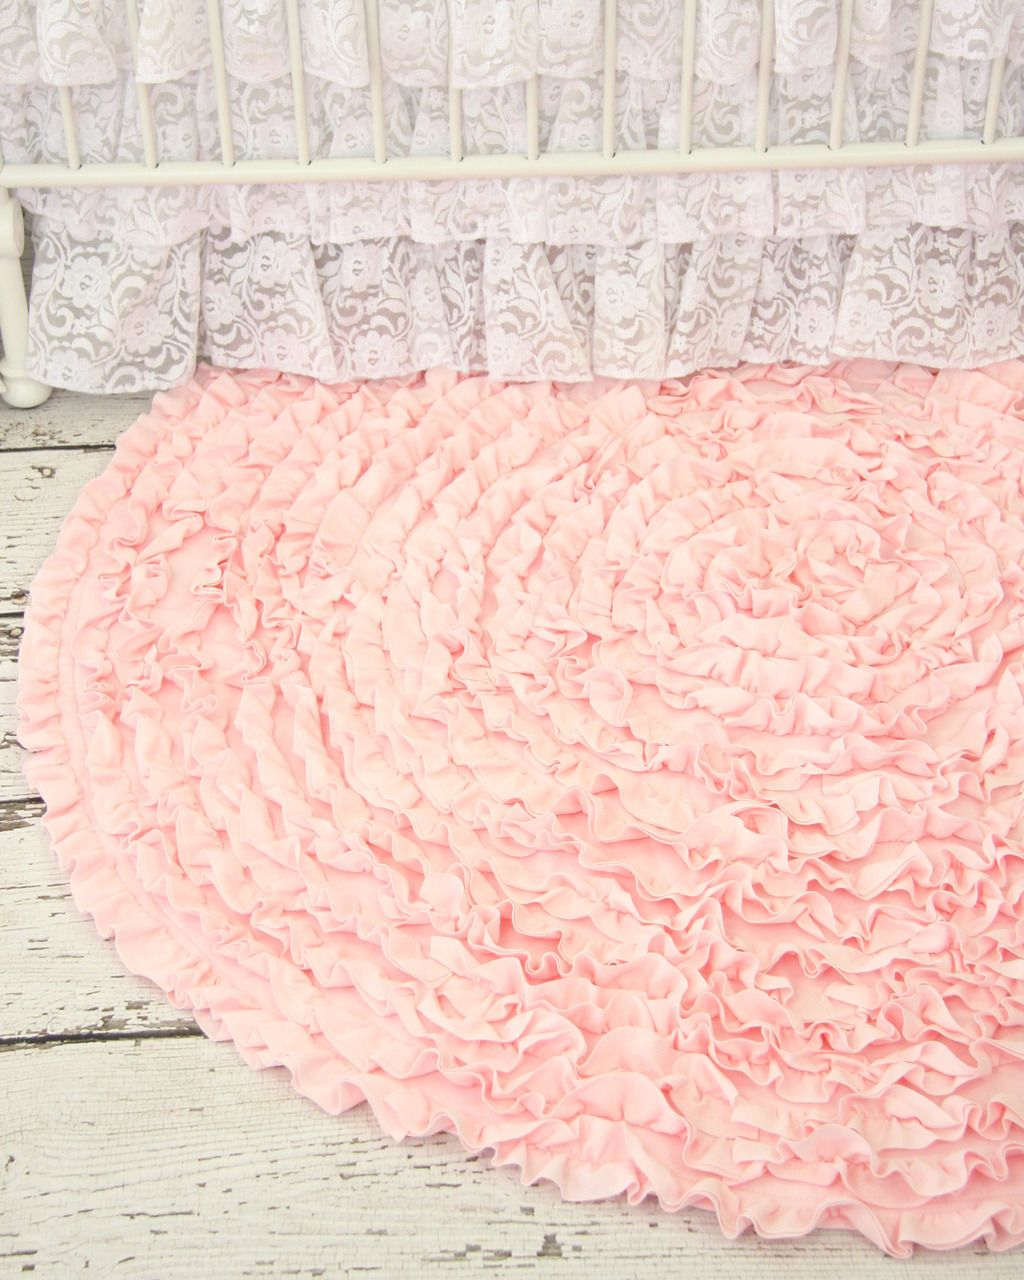 light pink ruffle rug  vintage inspired nursery and ruffles - how sweet is this ruffle rug for a pink vintage inspired nursery